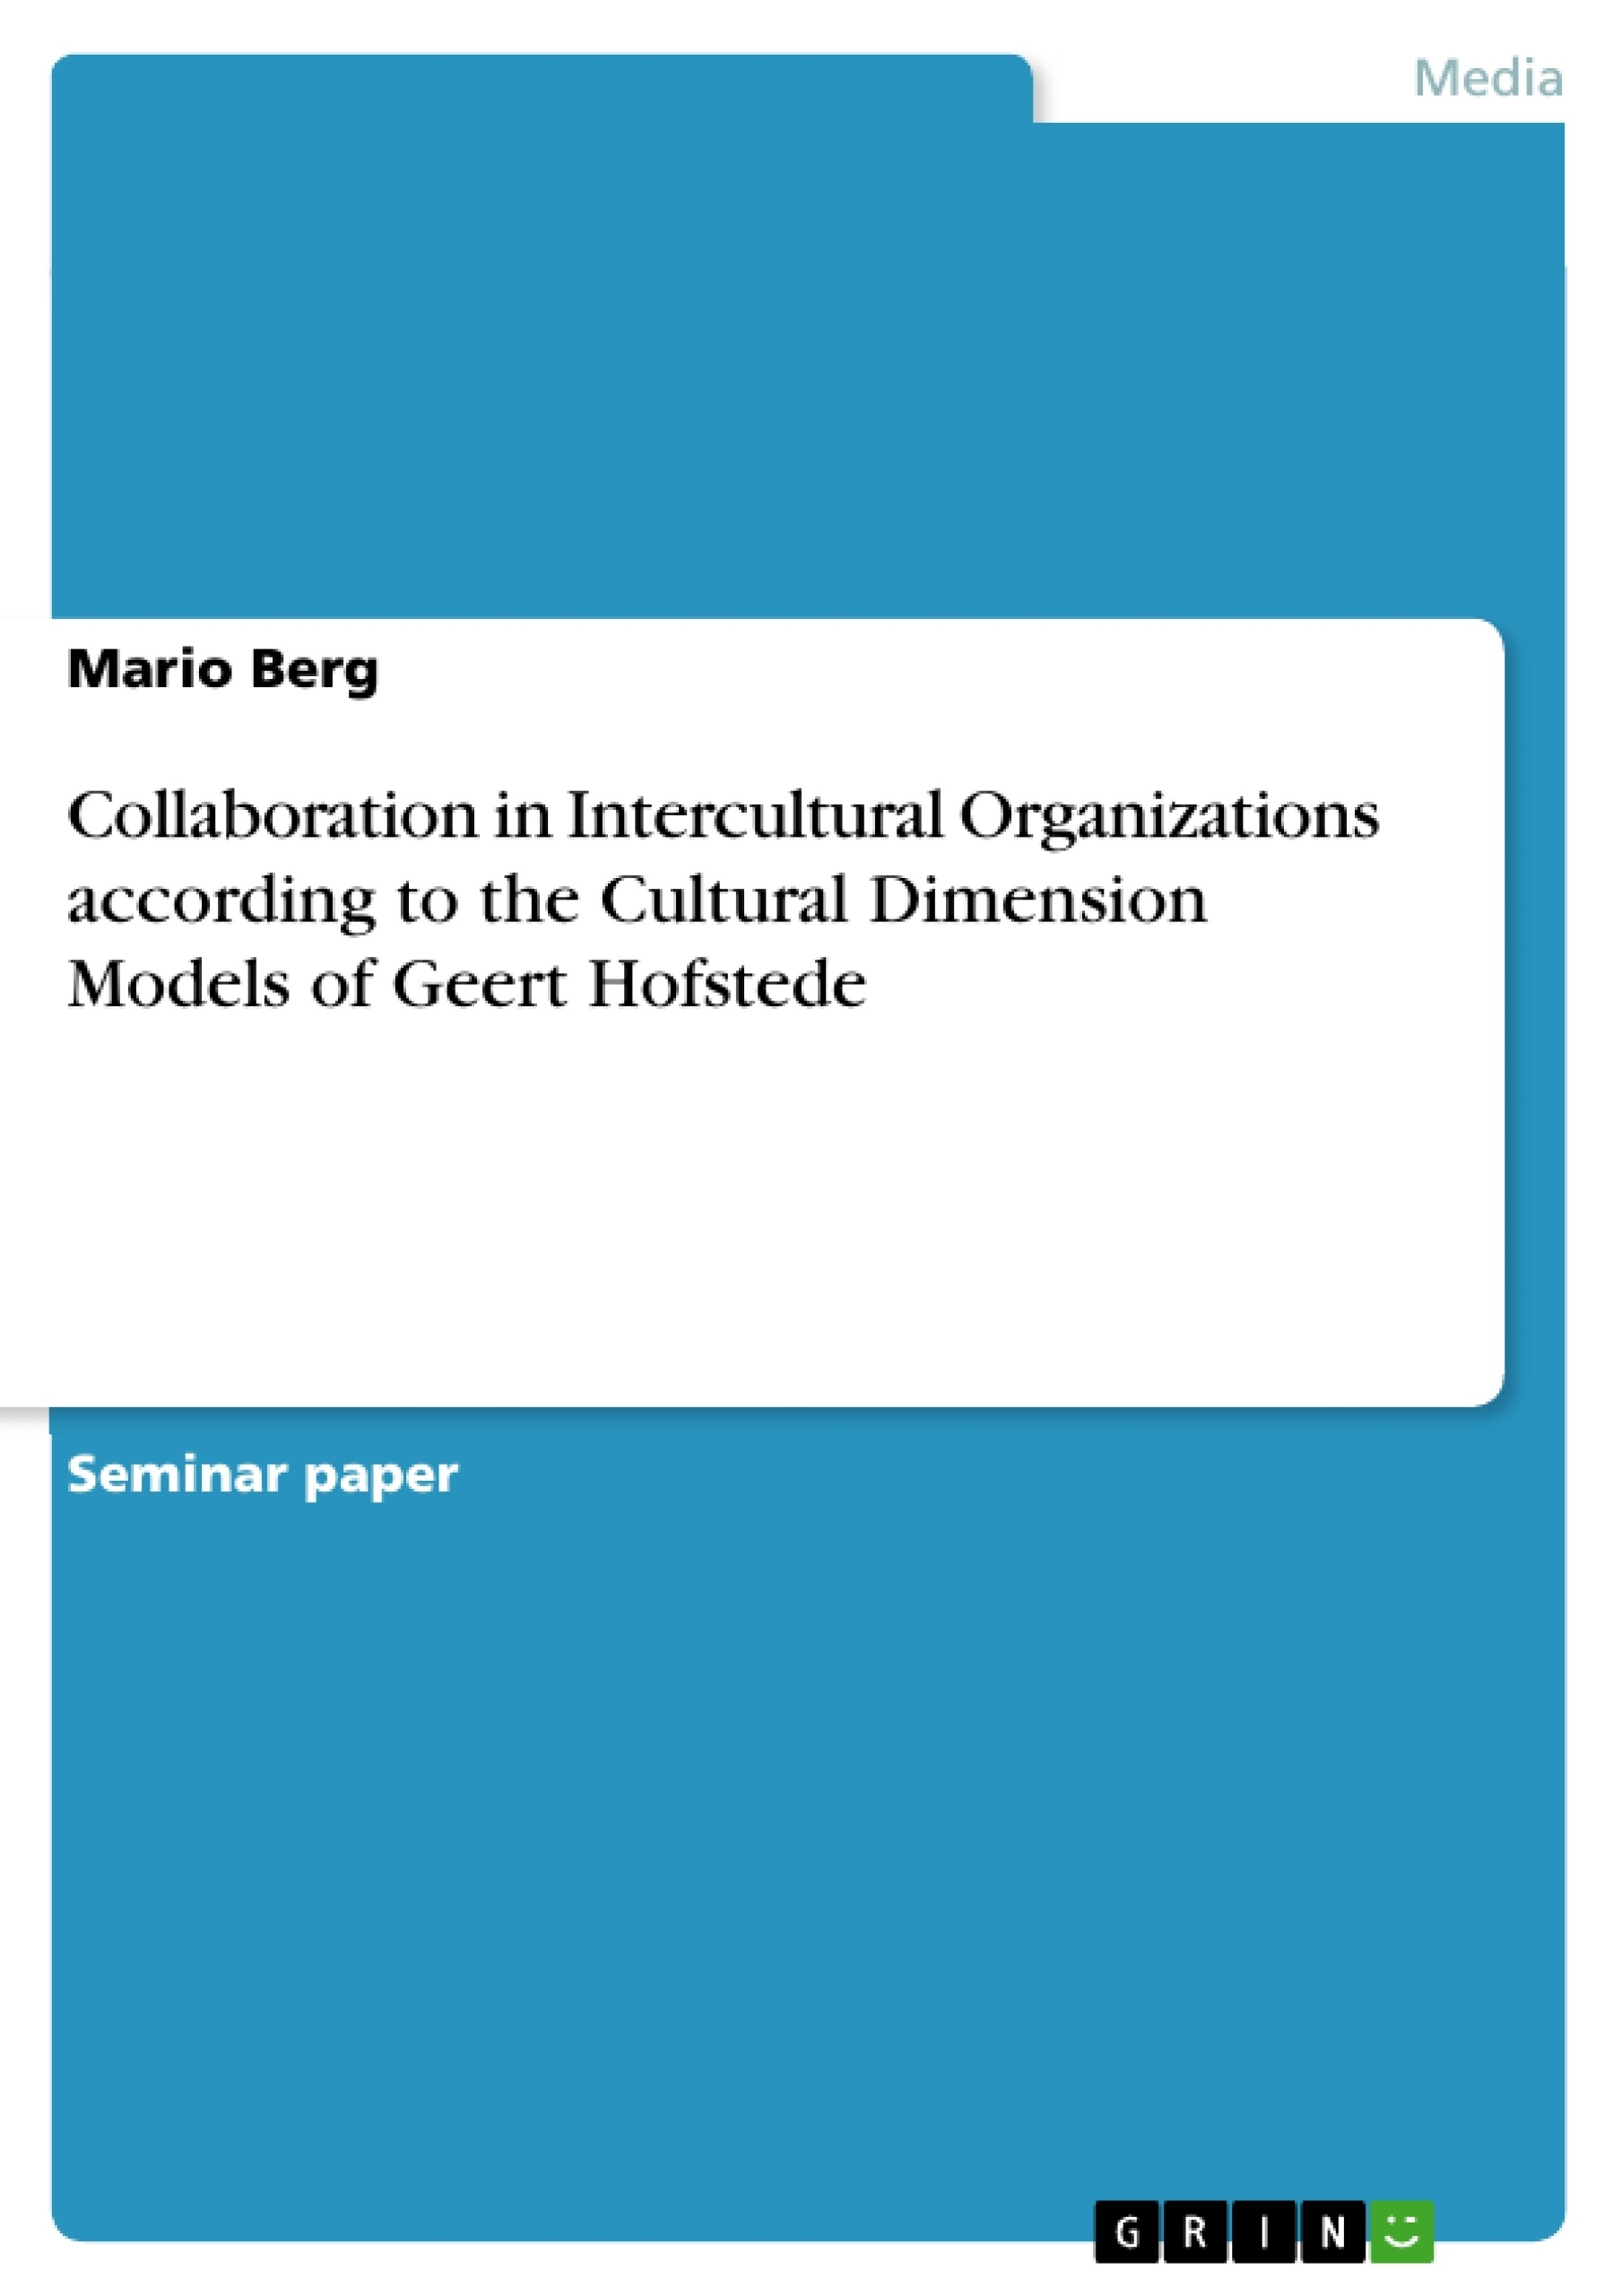 thesis on cross cultural communication